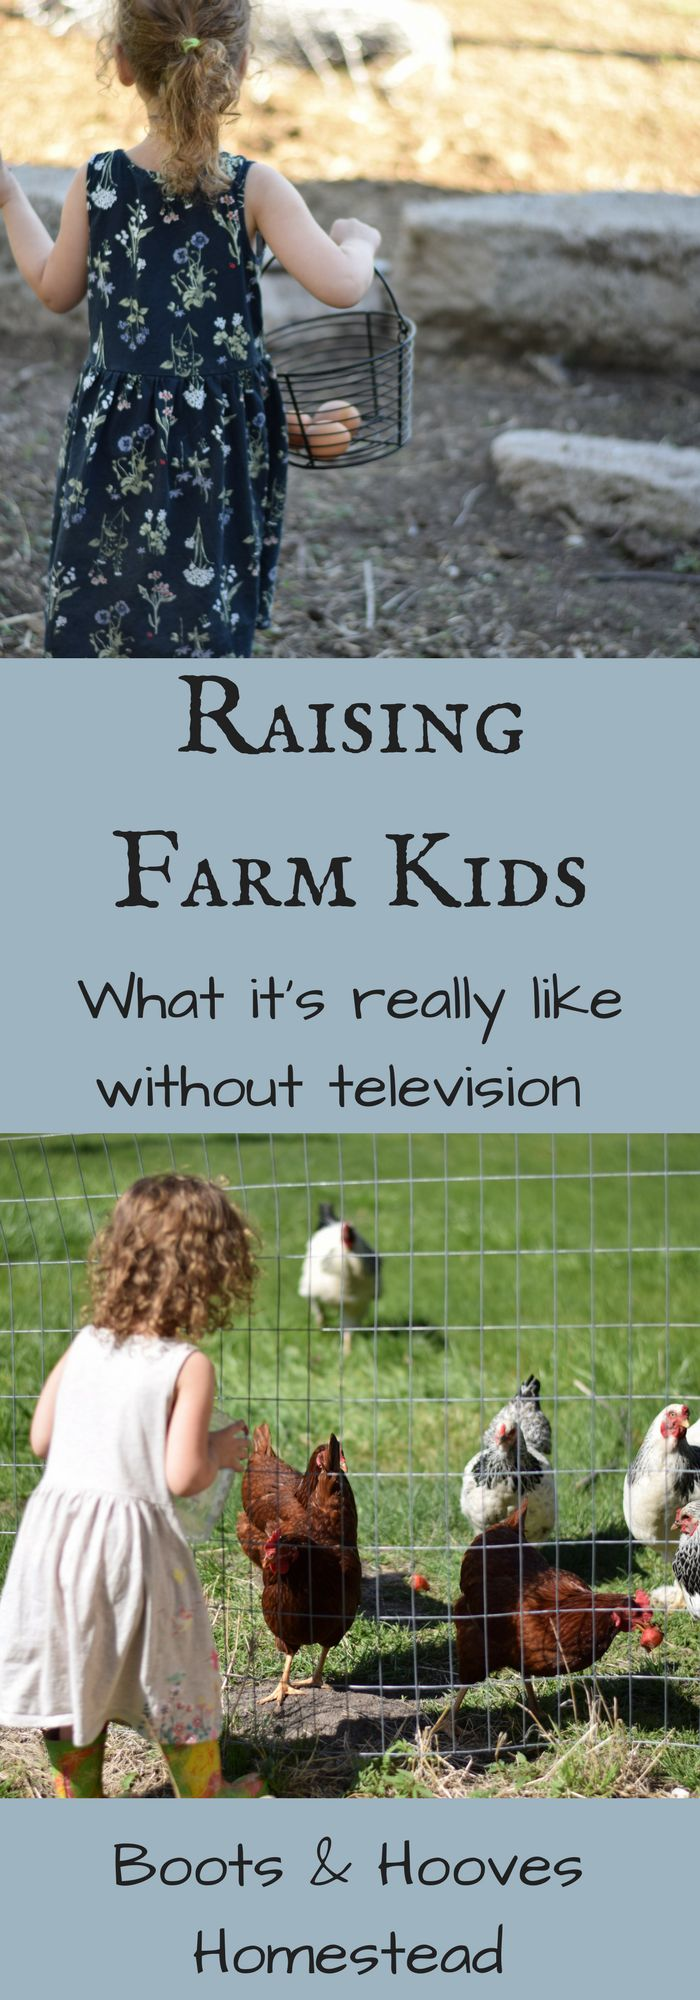 Raising Farm Kids: What it's Really Like Without TV - Boots & Hooves Homestead